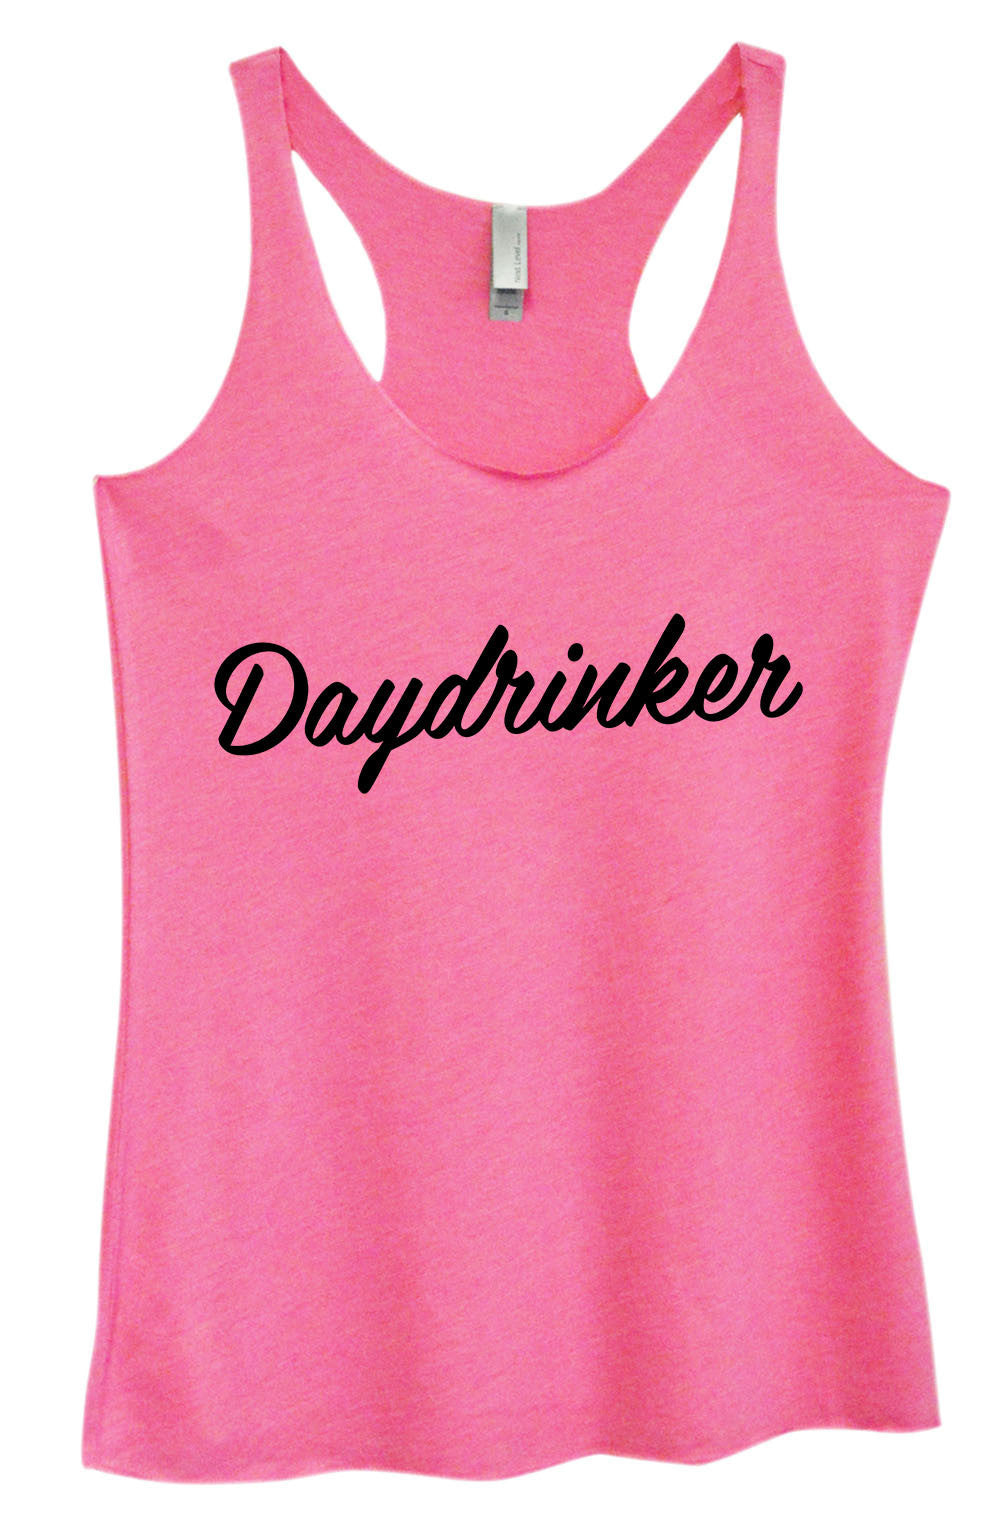 Womens Fashion Triblend Tank Top - Daydrinker - Tri-1569 - Funny Shirts Tank Tops Burnouts and Triblends  - 4